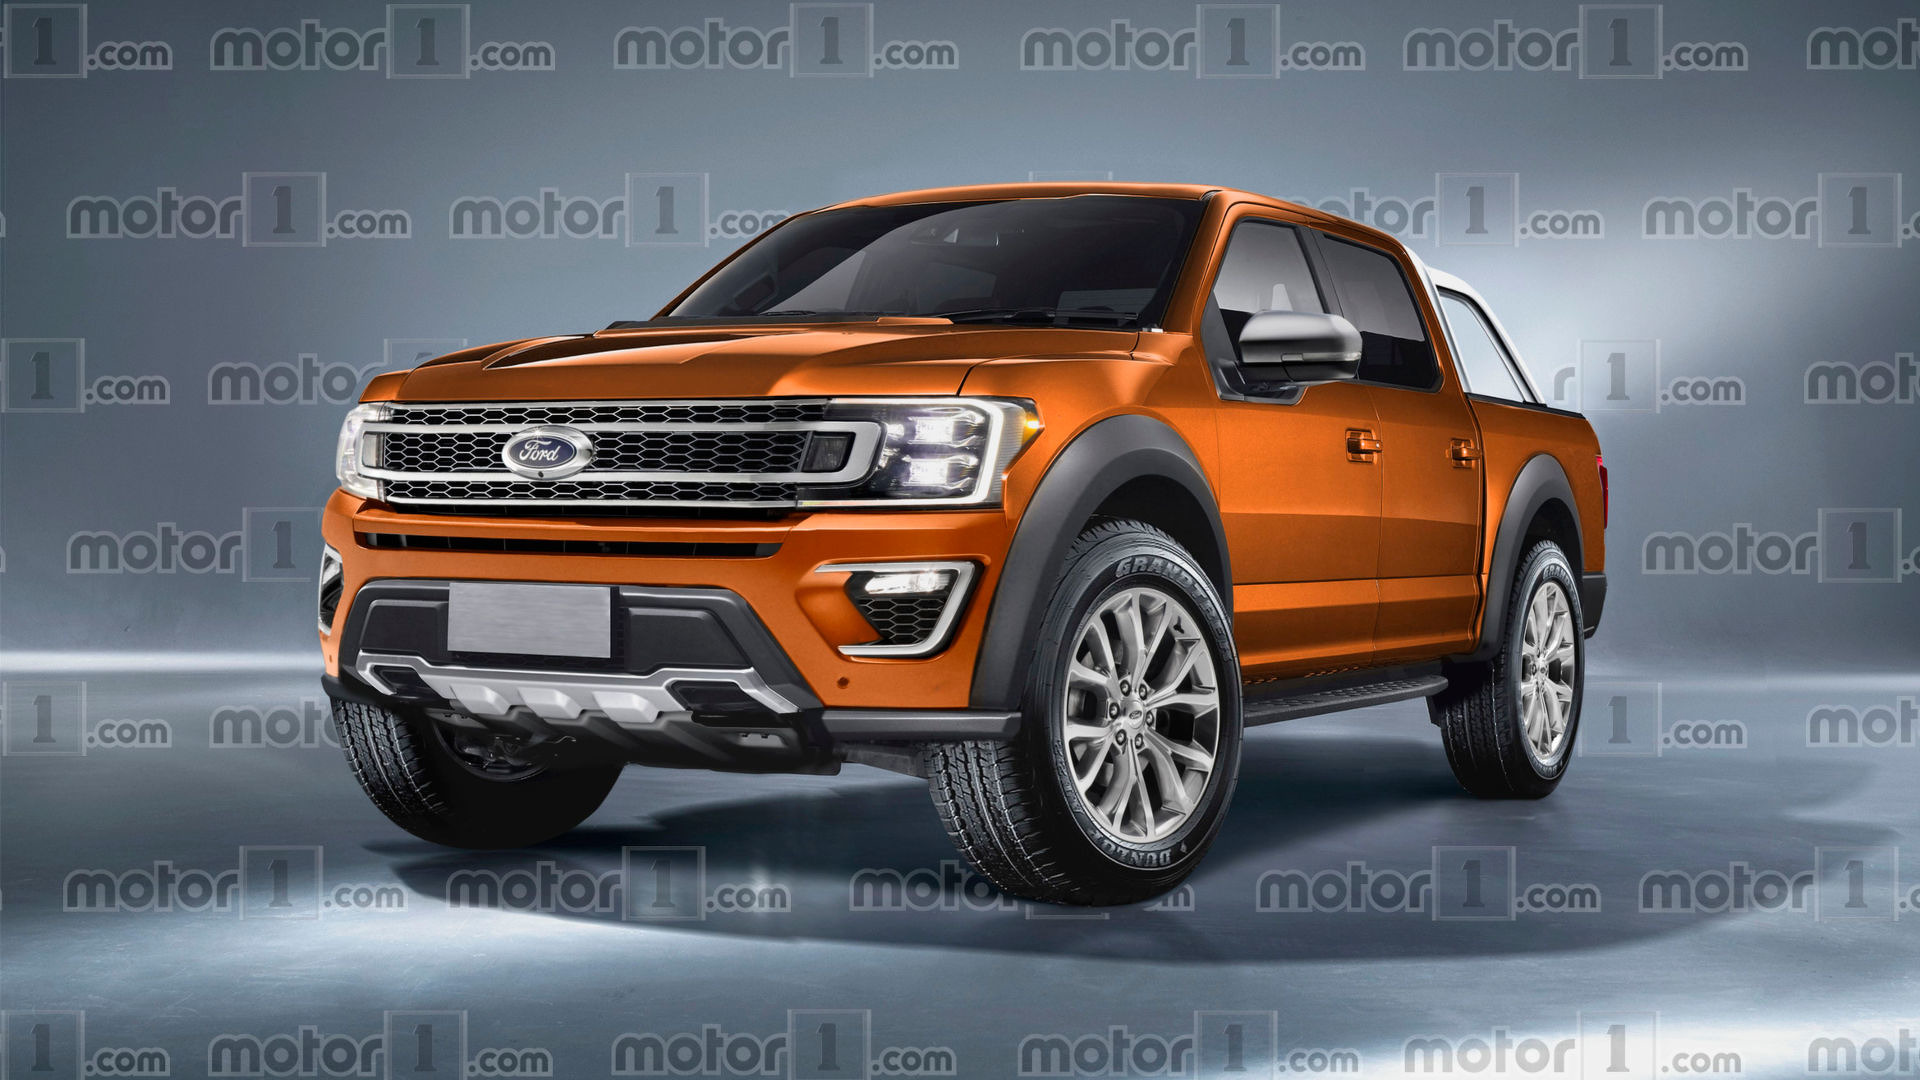 Ford Everest Uk Price >> 2019 Ford Ranger imagined as F-150's little brother